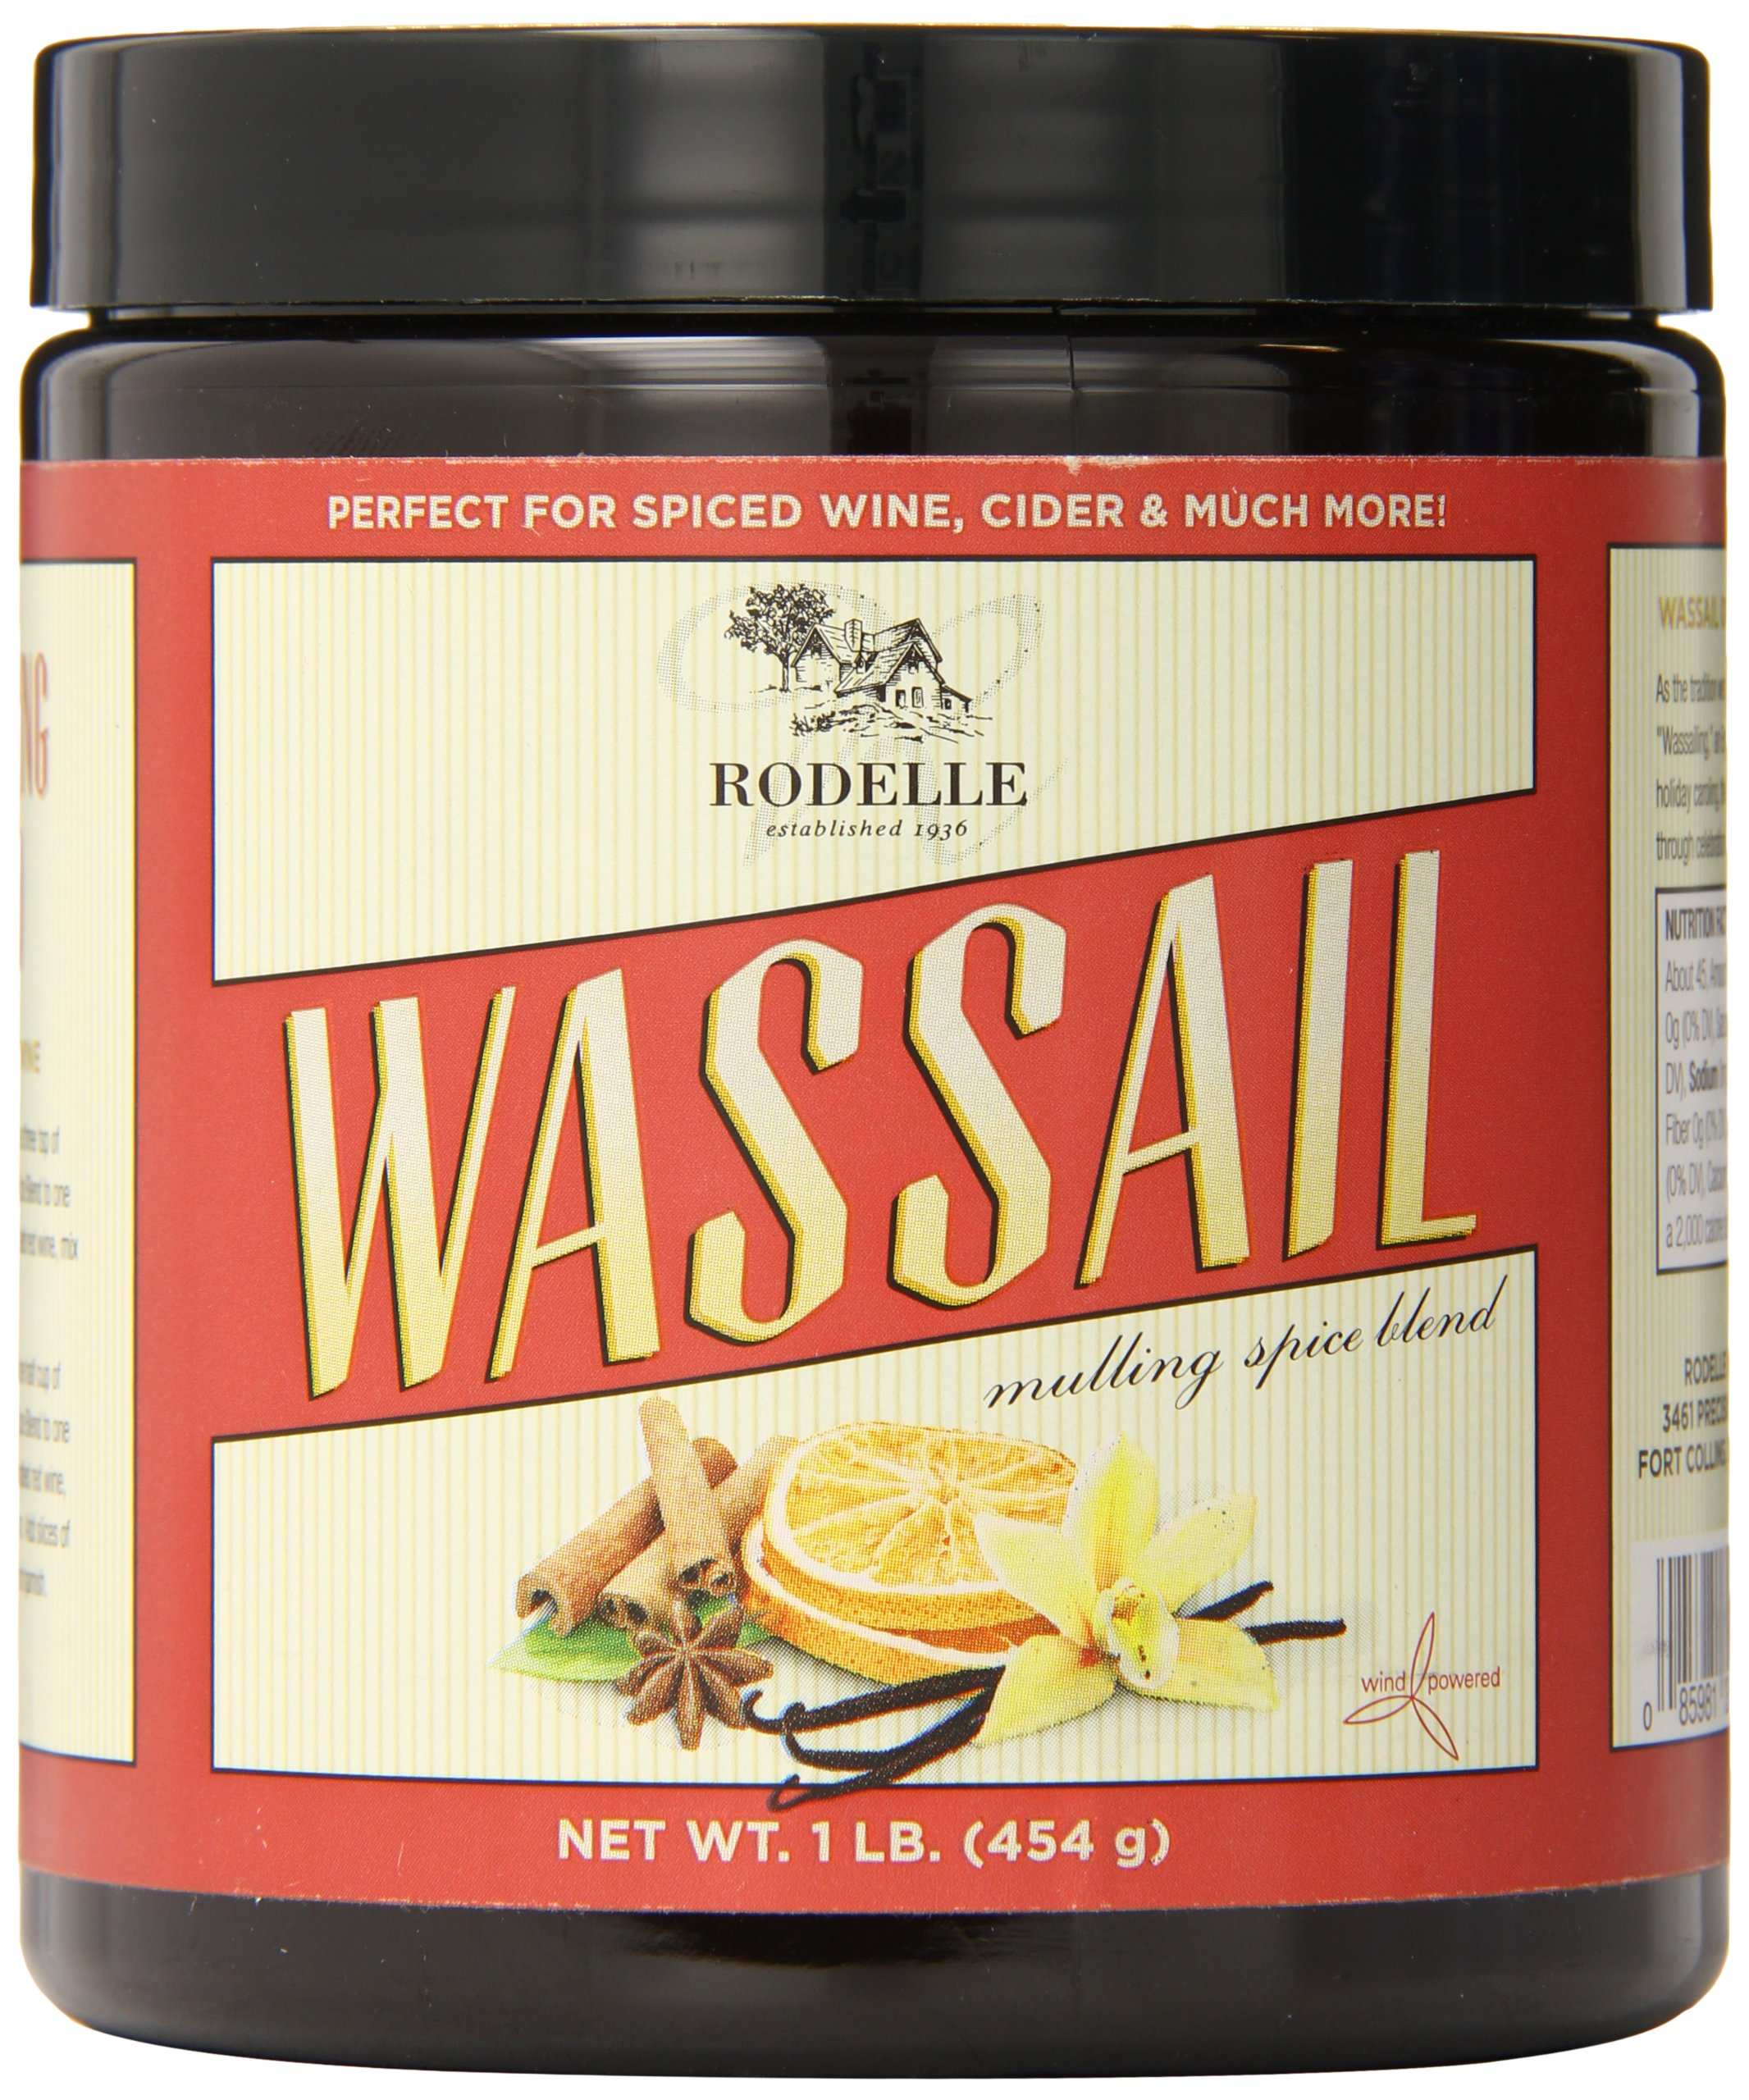 Rodelle Wassail Mulling Spice Blend, 16 Oz - Spiced Wine, Apple Cider